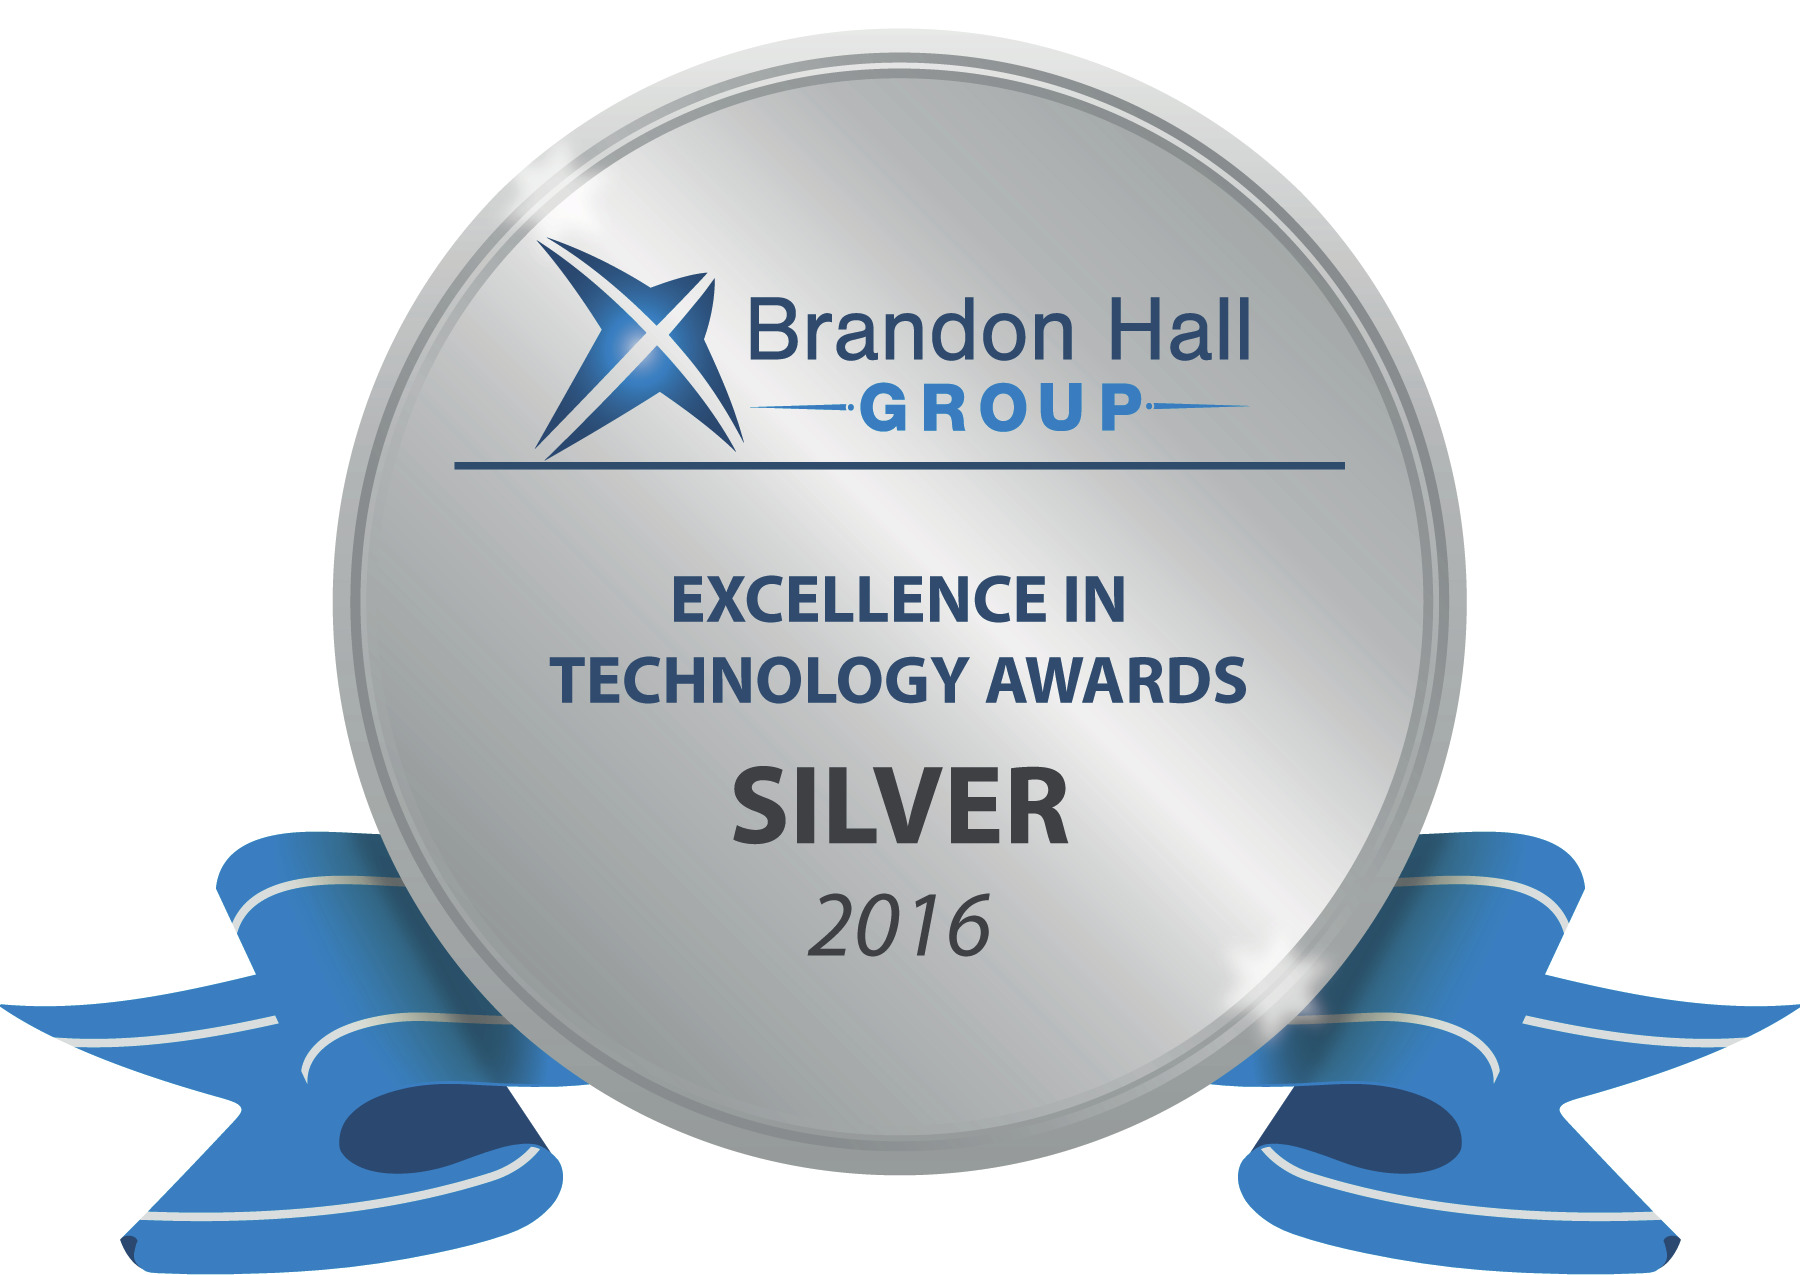 Silver excellence in technology awards